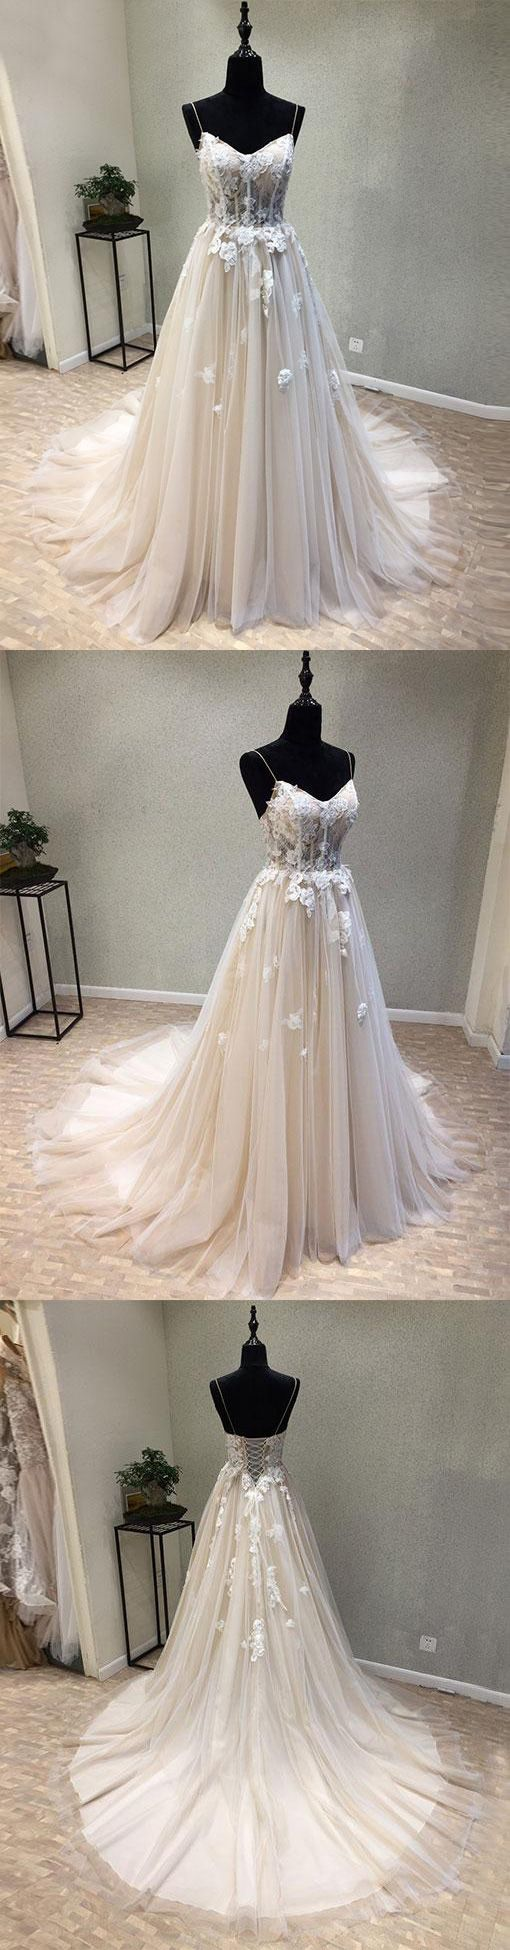 Champagne tulle lace long prom dress , champagne sweetheart neck tulle lace applique long wedding dress, lace evening dress